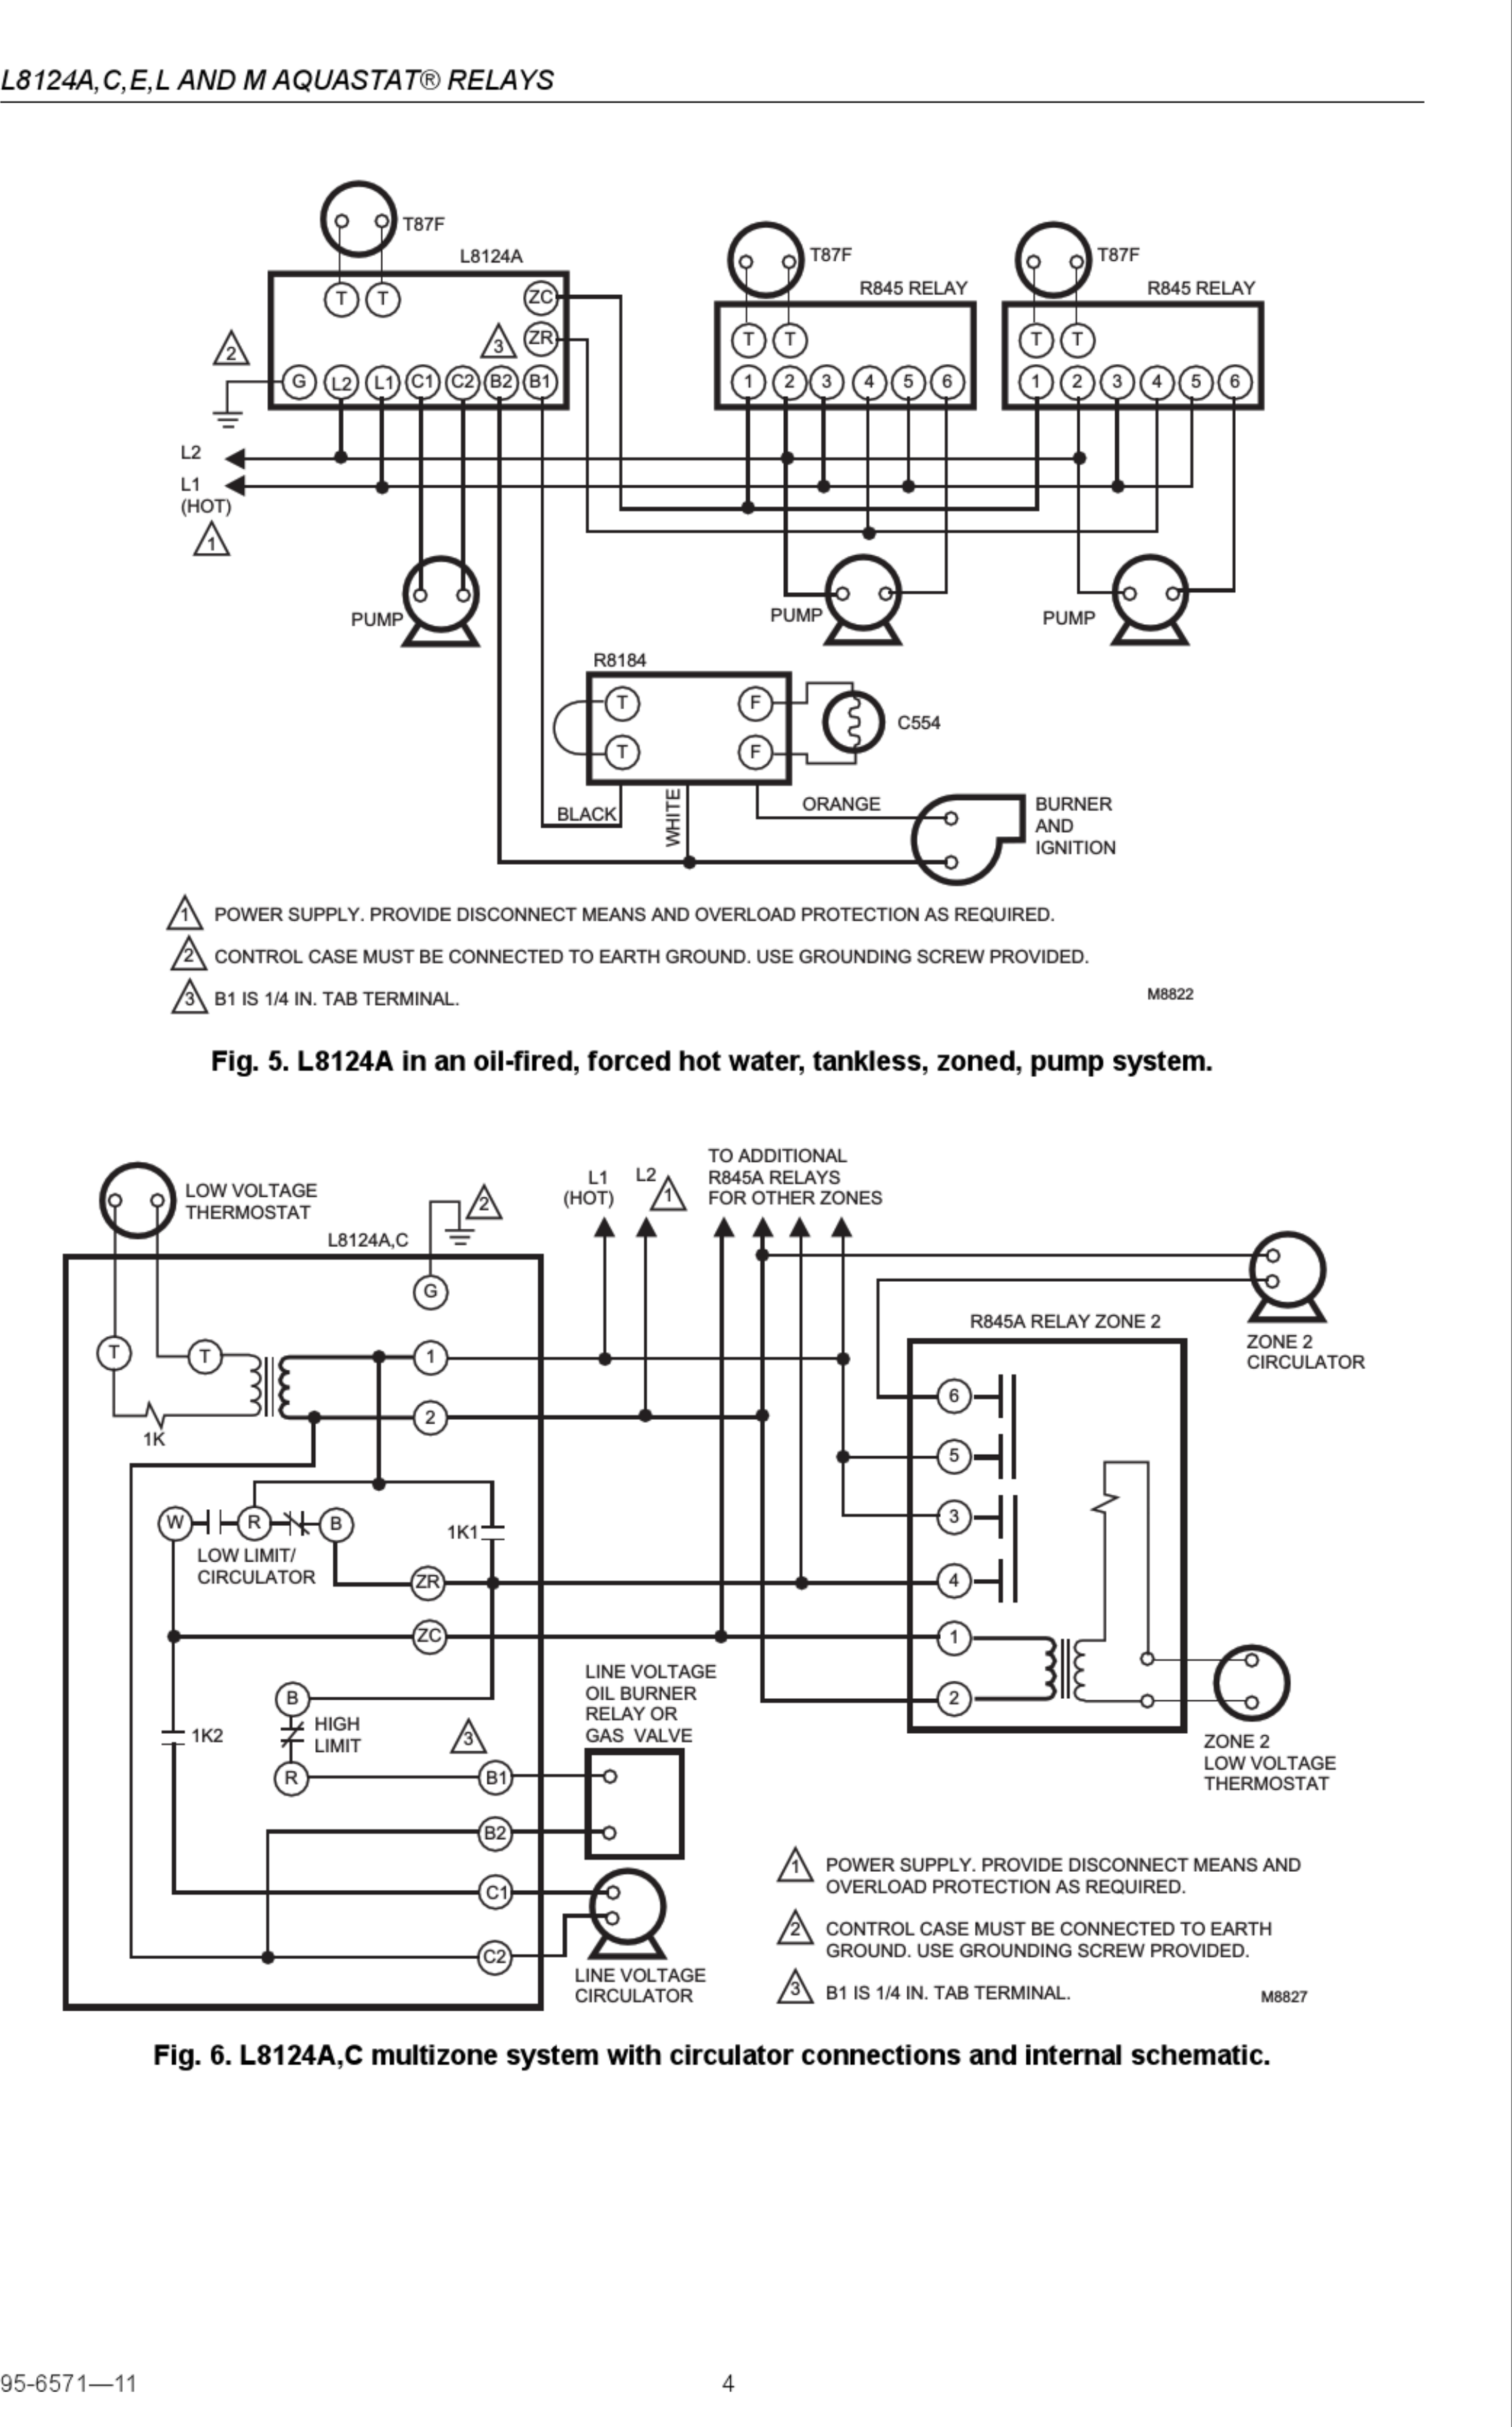 honeywell th6110d1021 wiring diagram honeywell th5220d1029